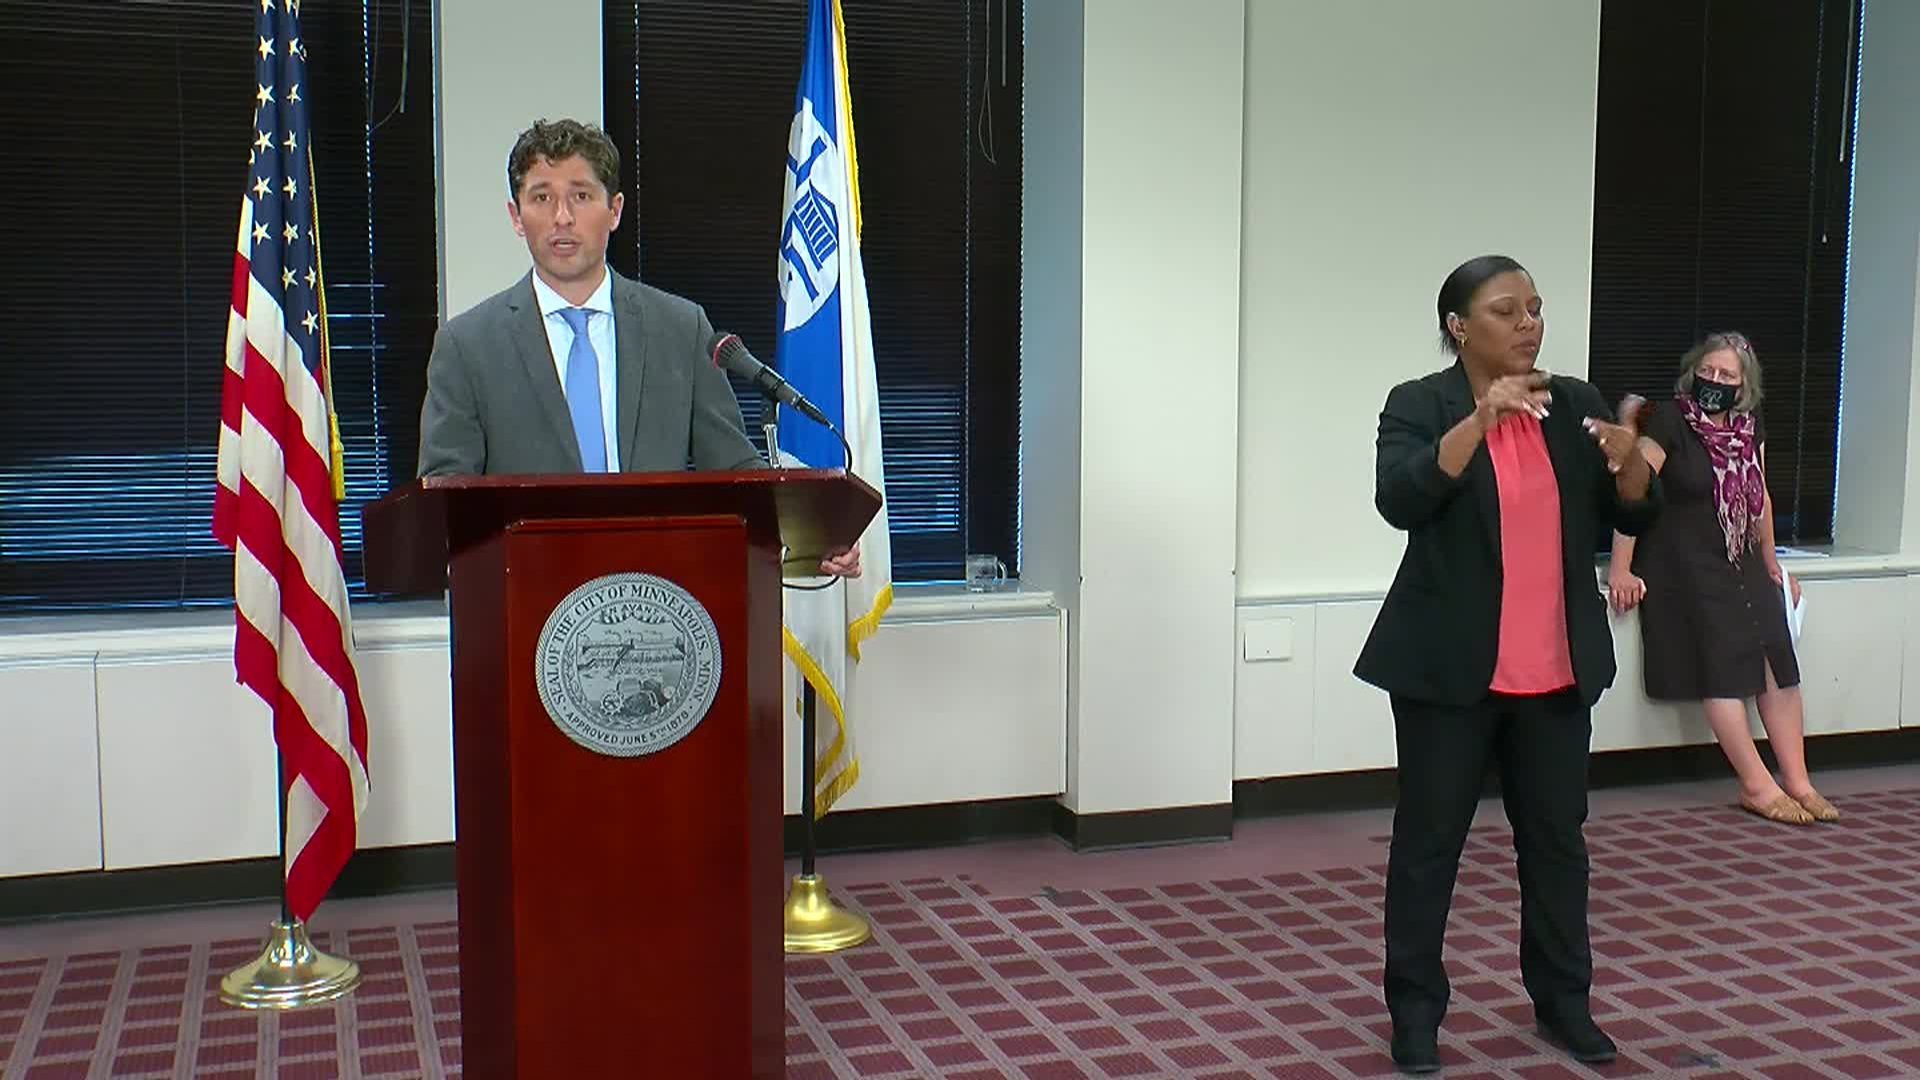 Minneapolis Mayor Jacob Frey speaks during a press conference in Minneapolis on July 29.